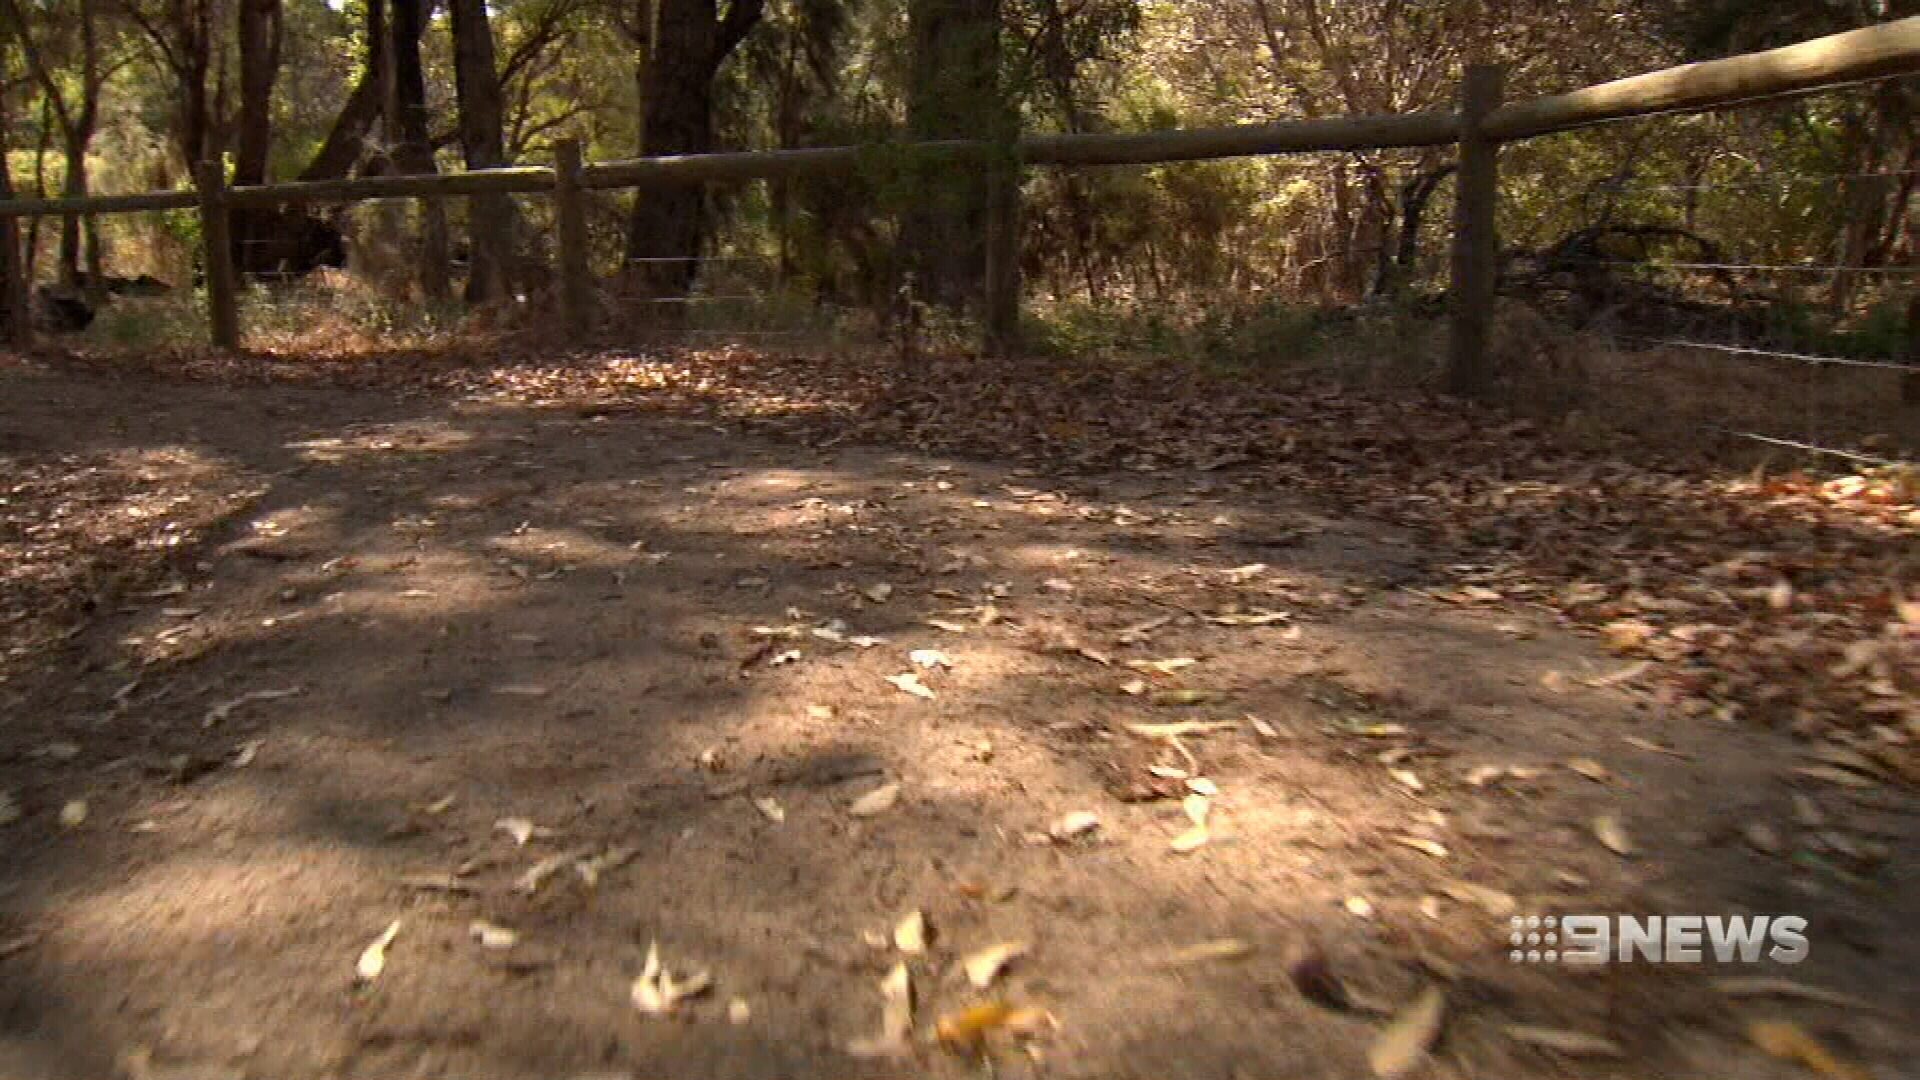 Thieves target severely disabled woman in Perth park